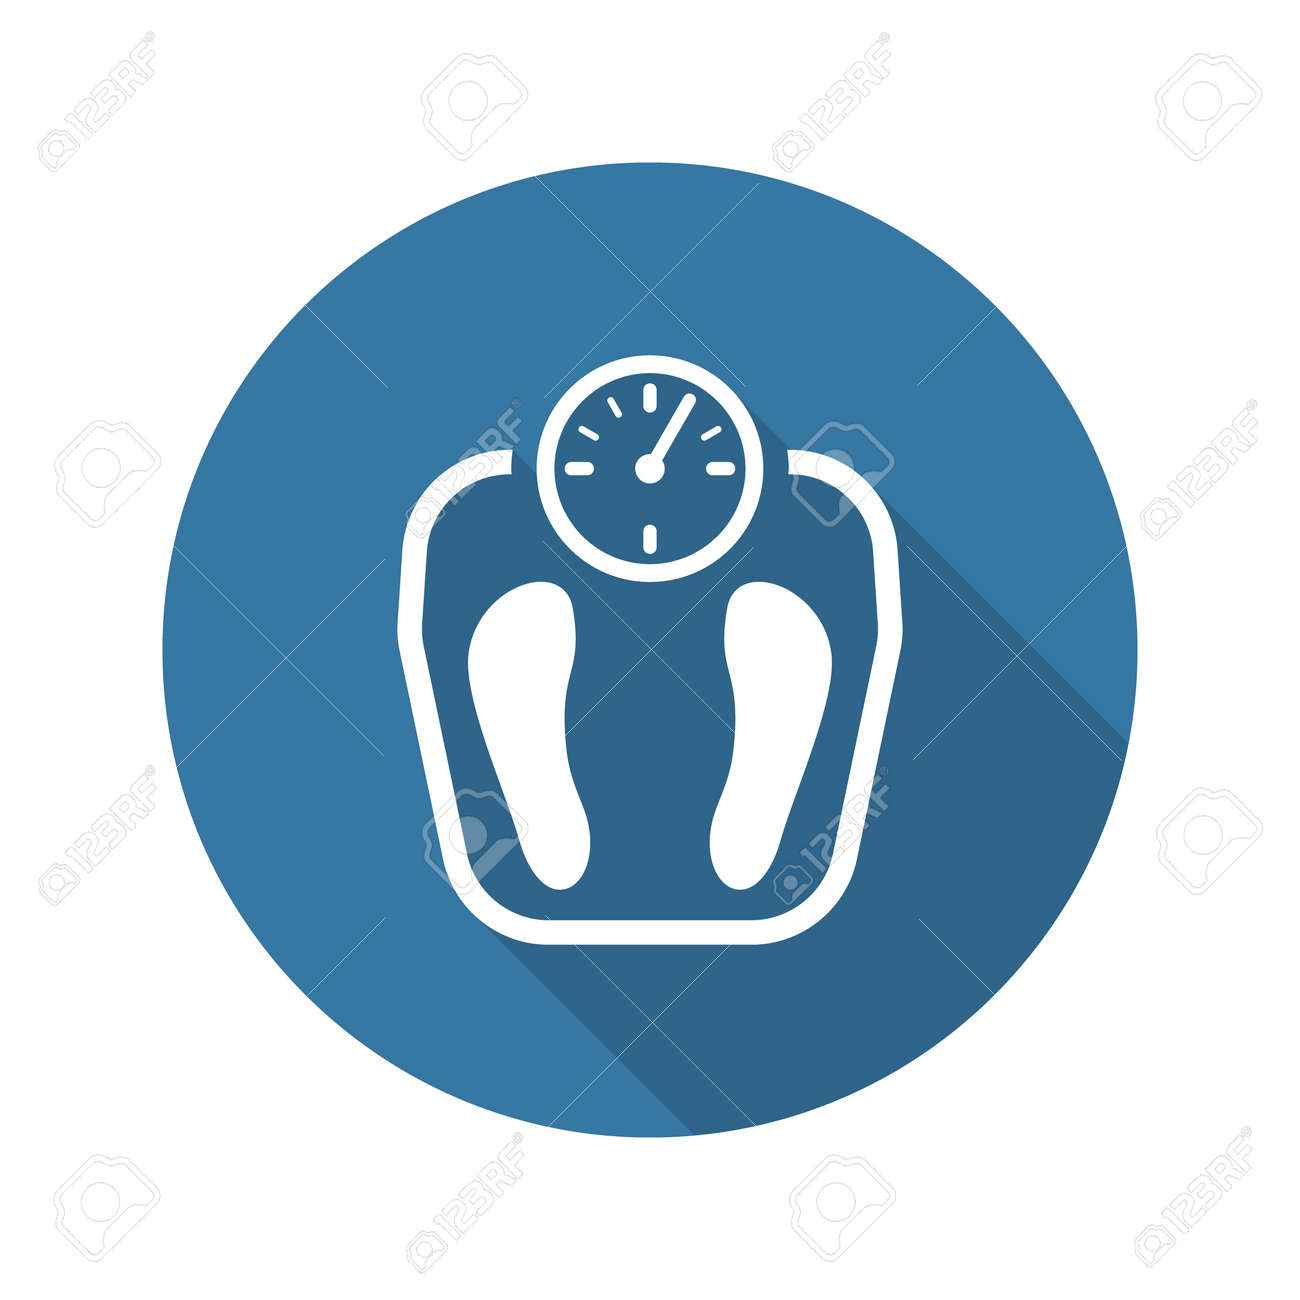 Weight Management Icon with Shadow. Flat Design. Isolated Illustration. - 48456187